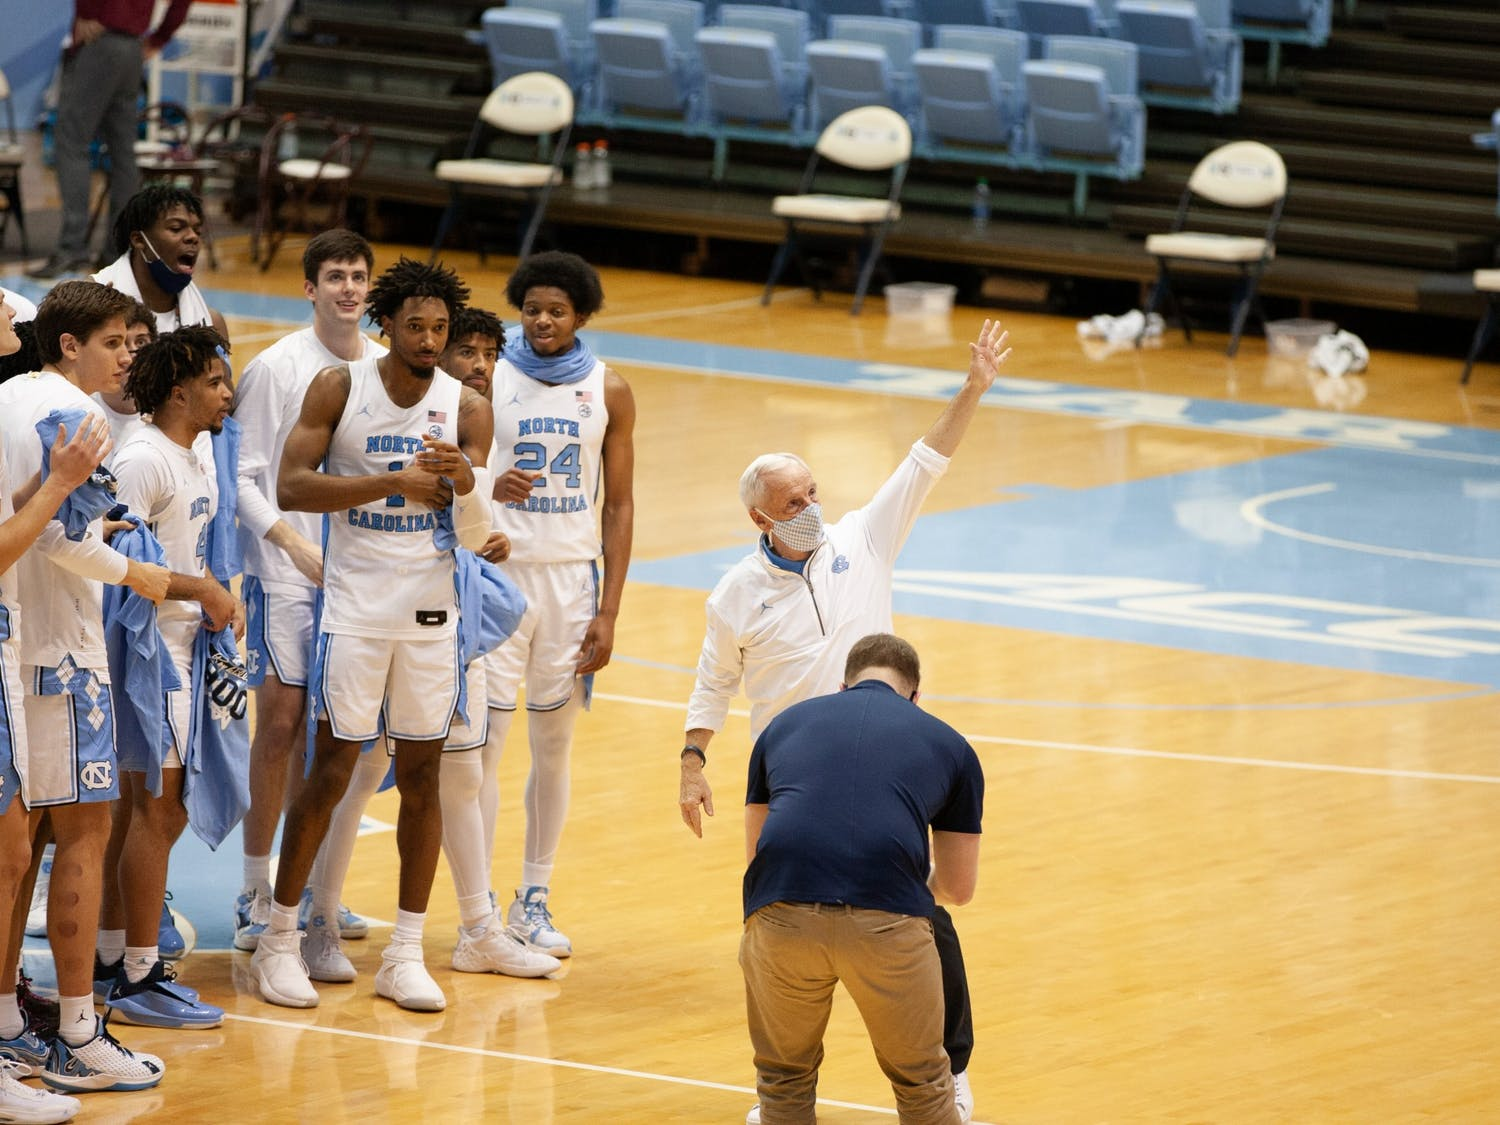 UNC head coach Roy Williams waves to the crowd following Carolina's 78-70 victory over Florida State in the Smith Center, Feb. 27, 2021. The victory was Williams' 900th as a head coach.